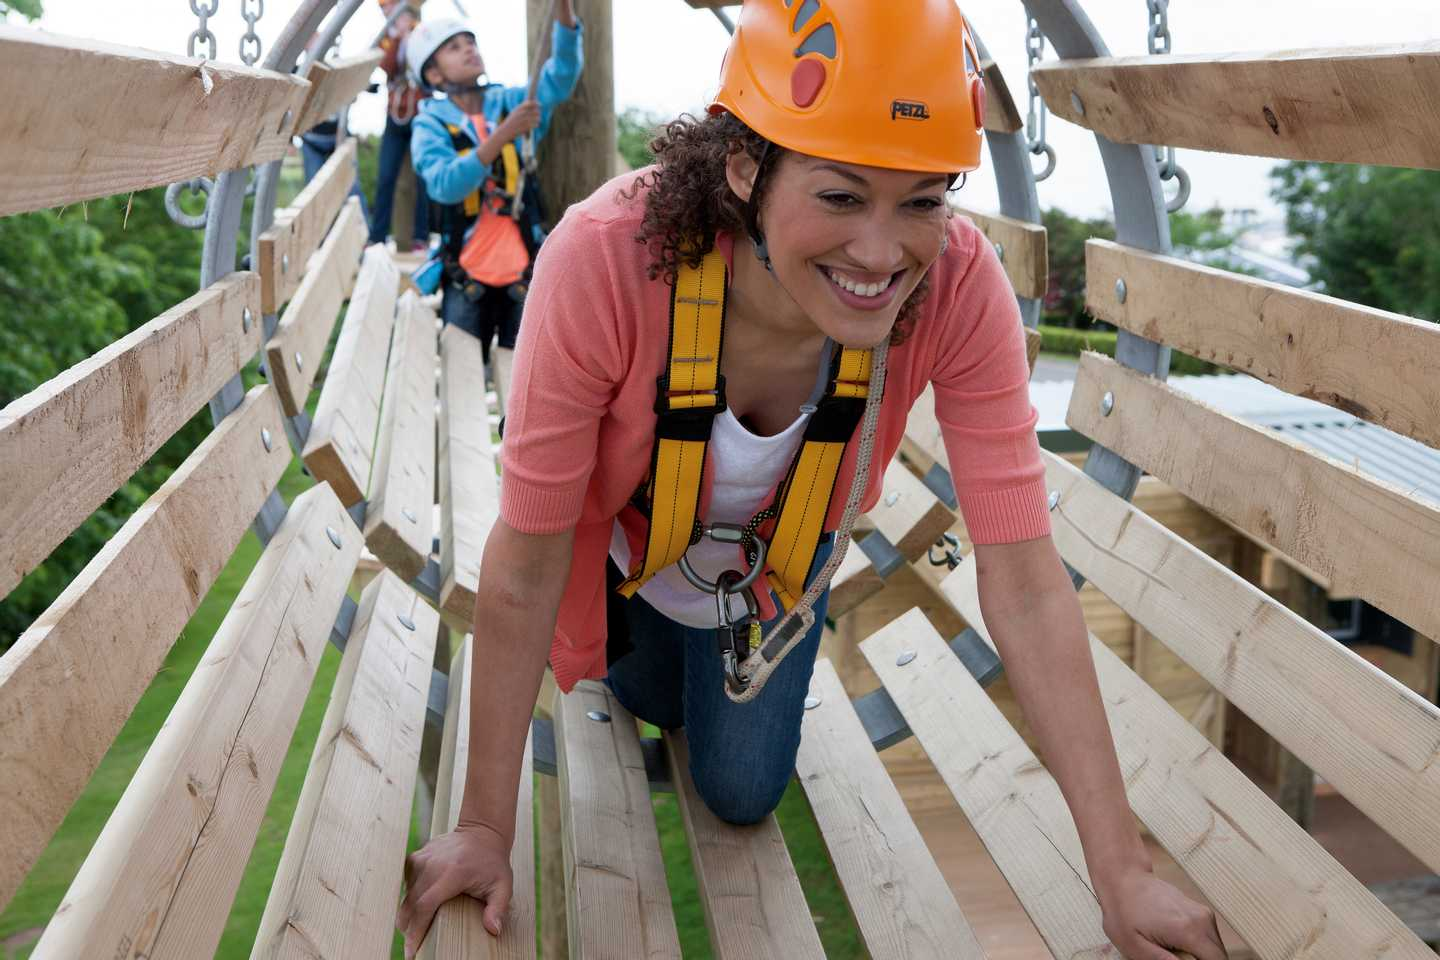 Woman crawling on equipment Aerial Adventure high ropes course